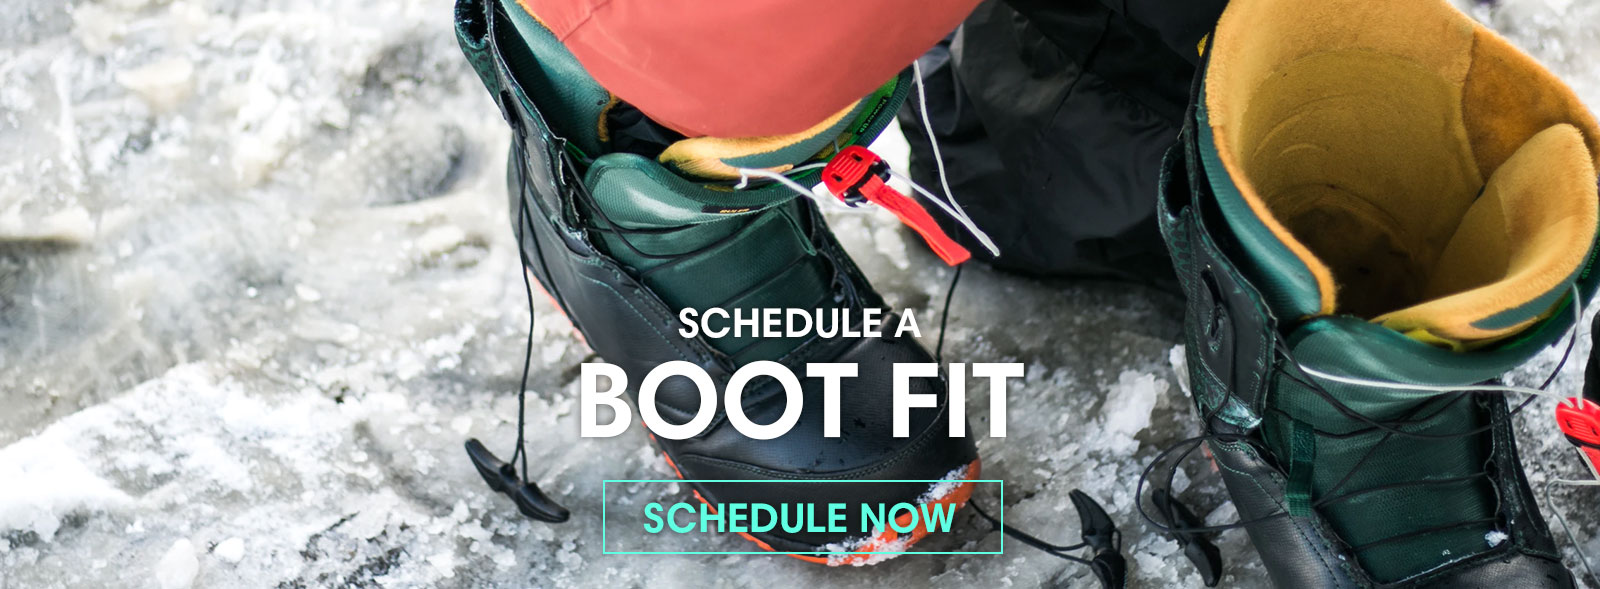 Schedule A Boot Fit